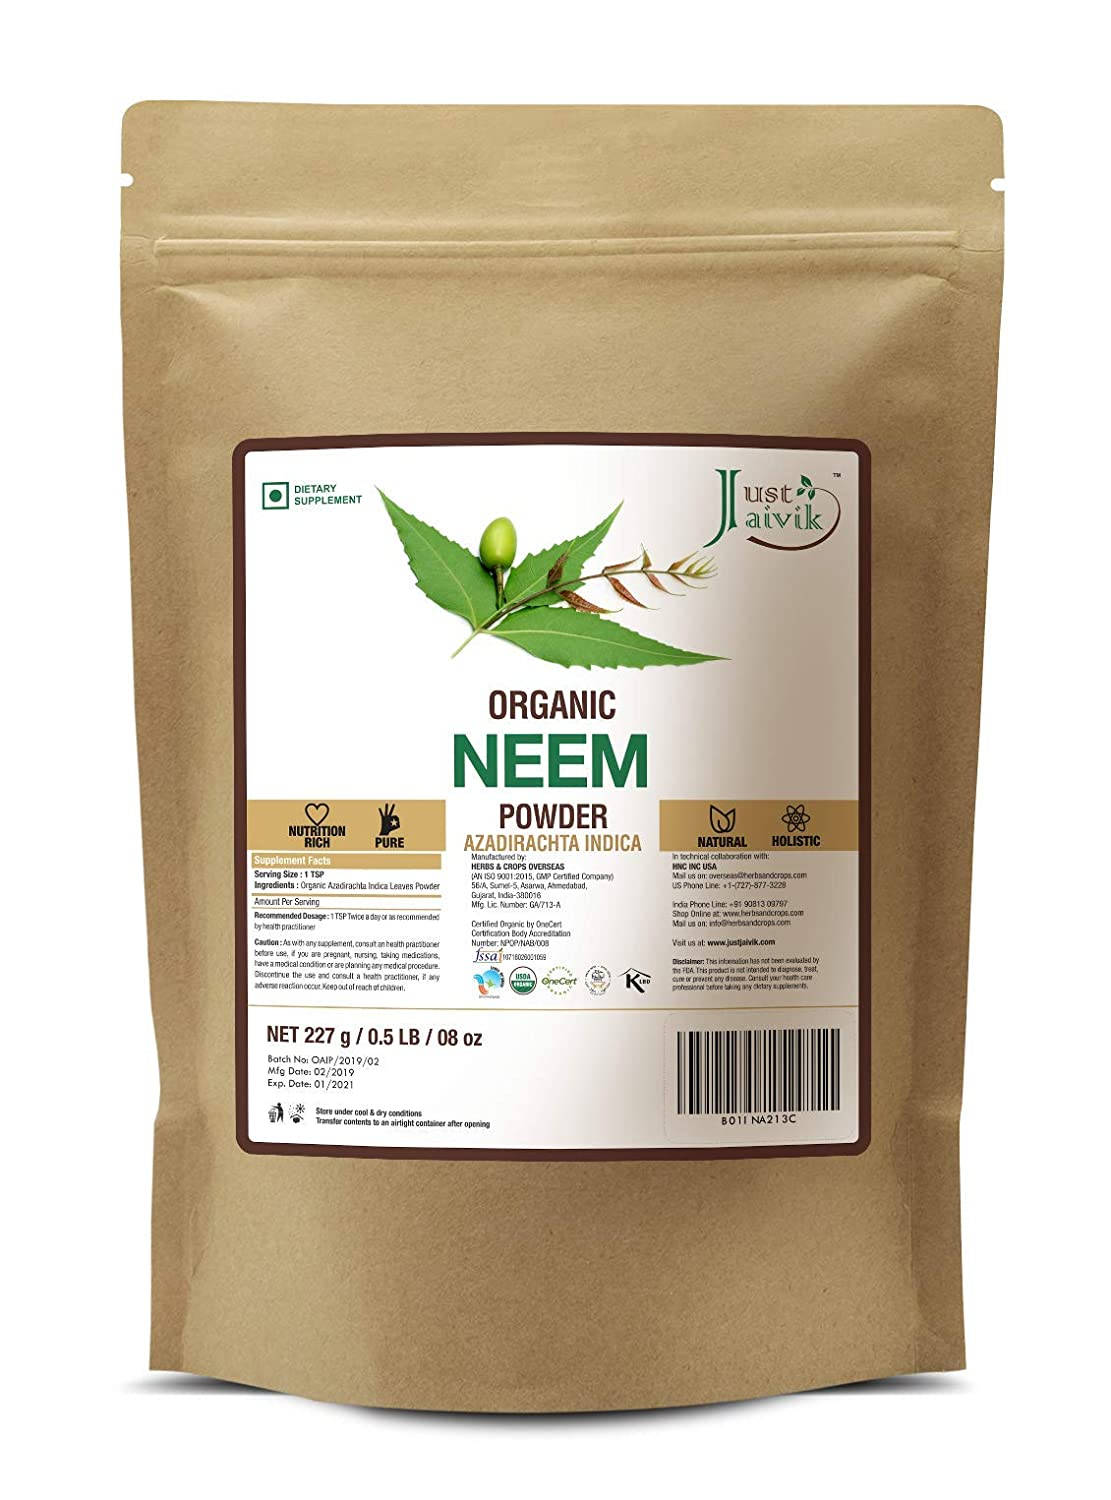 Just Jaivik 100% Organic Neem Leaves Powder - USDA Certified Organic, 227 gms / 1/2 LB Pound / 08 Oz - Azadirachta Indica - Promoting healthy hair and clear skin (AN USDA Organic Certified Herb) : Beauty